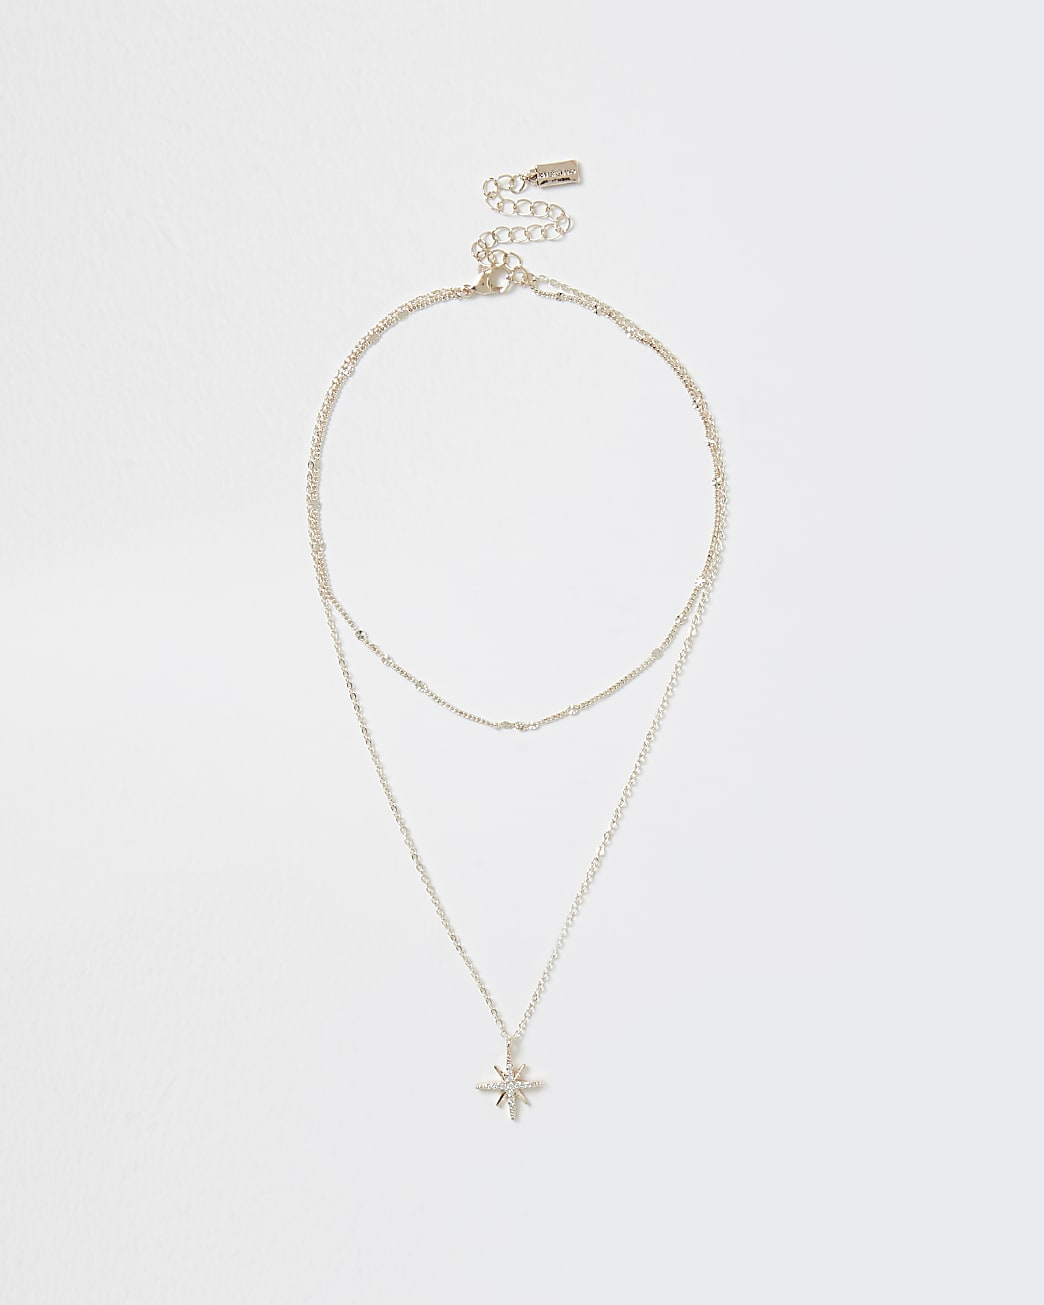 Rose gold colour star charm necklace